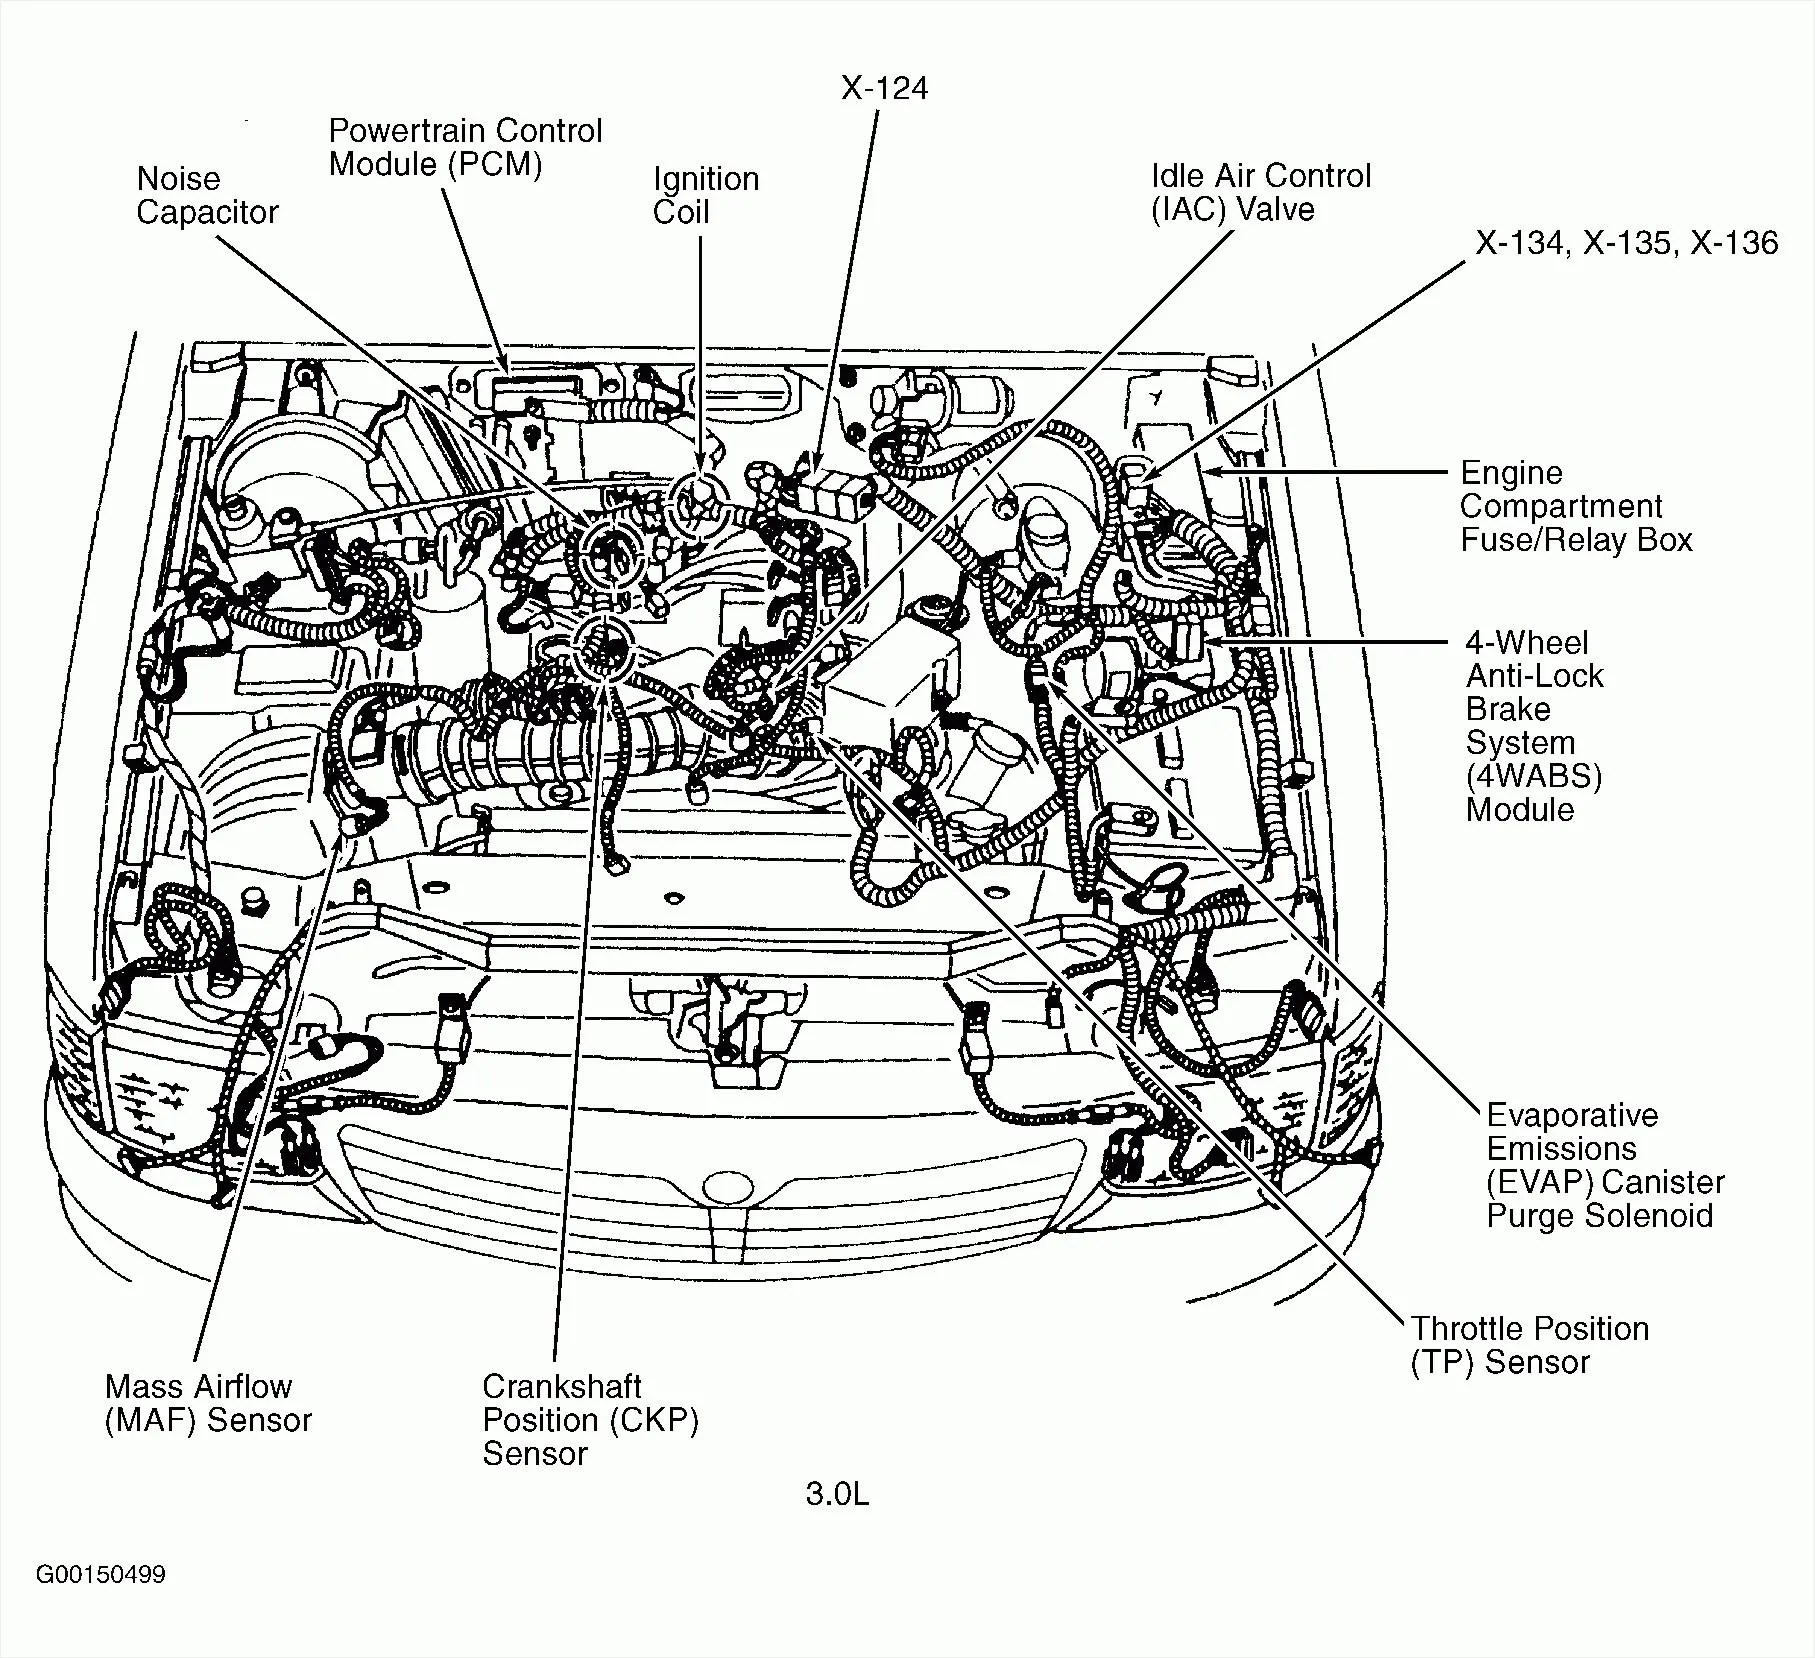 hight resolution of pontiac 3 8 engine diagram reduced engine wiring diagram database 2001 mercury sable engine diagram 2001 pontiac bonneville engine diagram